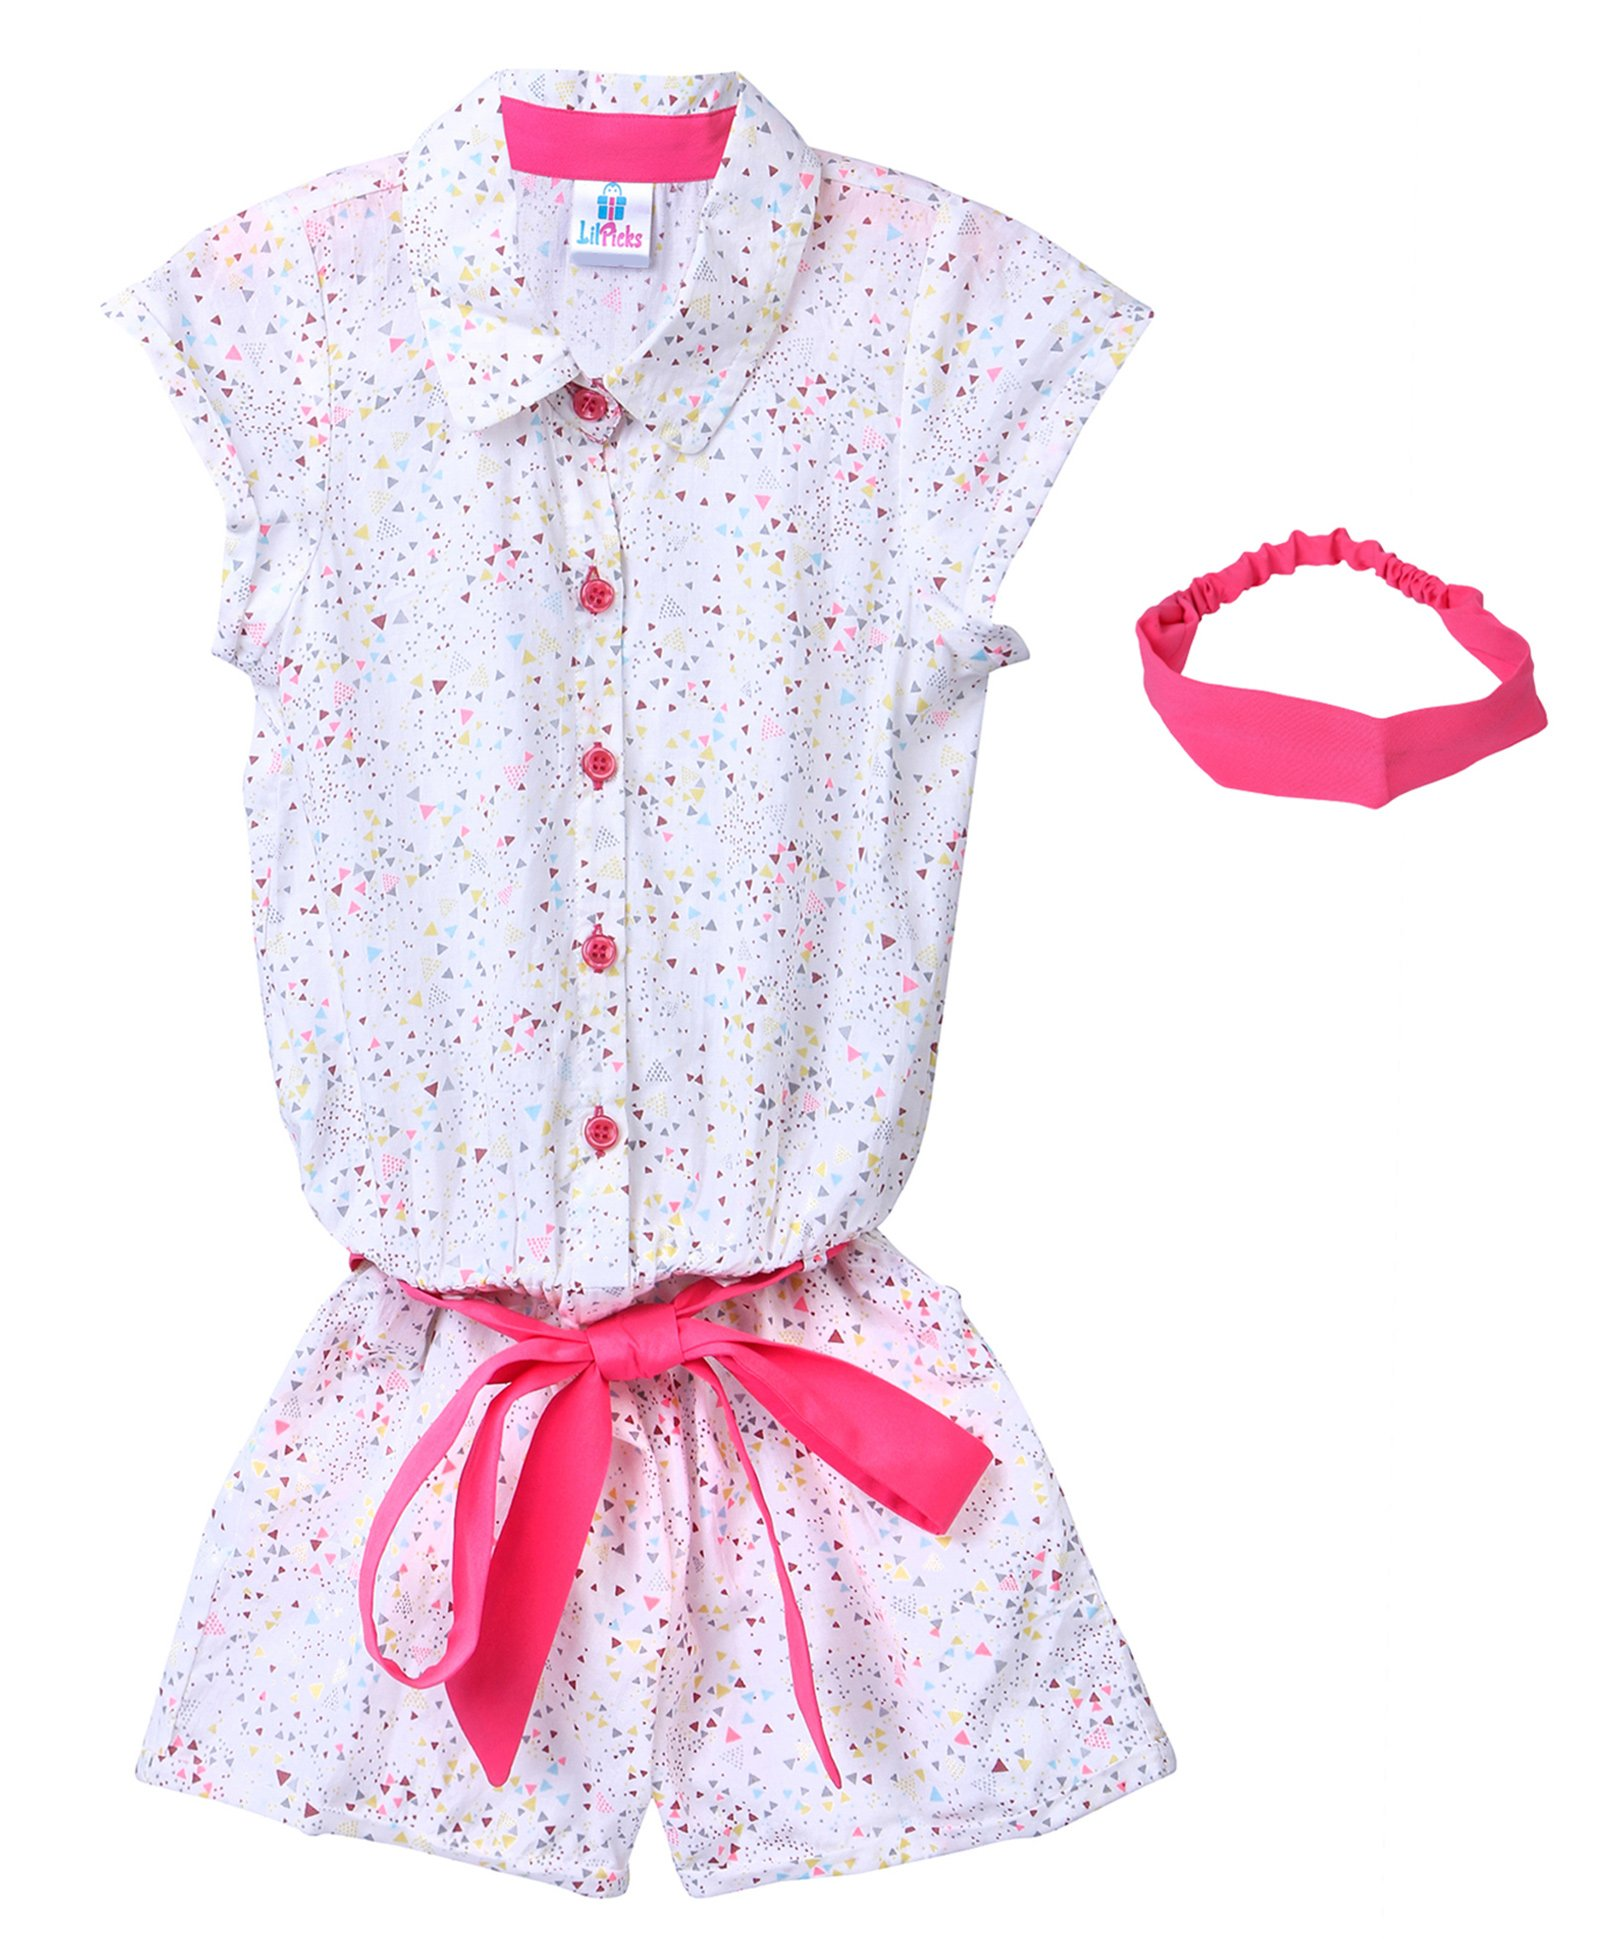 8c7df7437450 Lilpicks Couture Short Sleeves Small Triangle Print Jumpsuit With Headband  - White